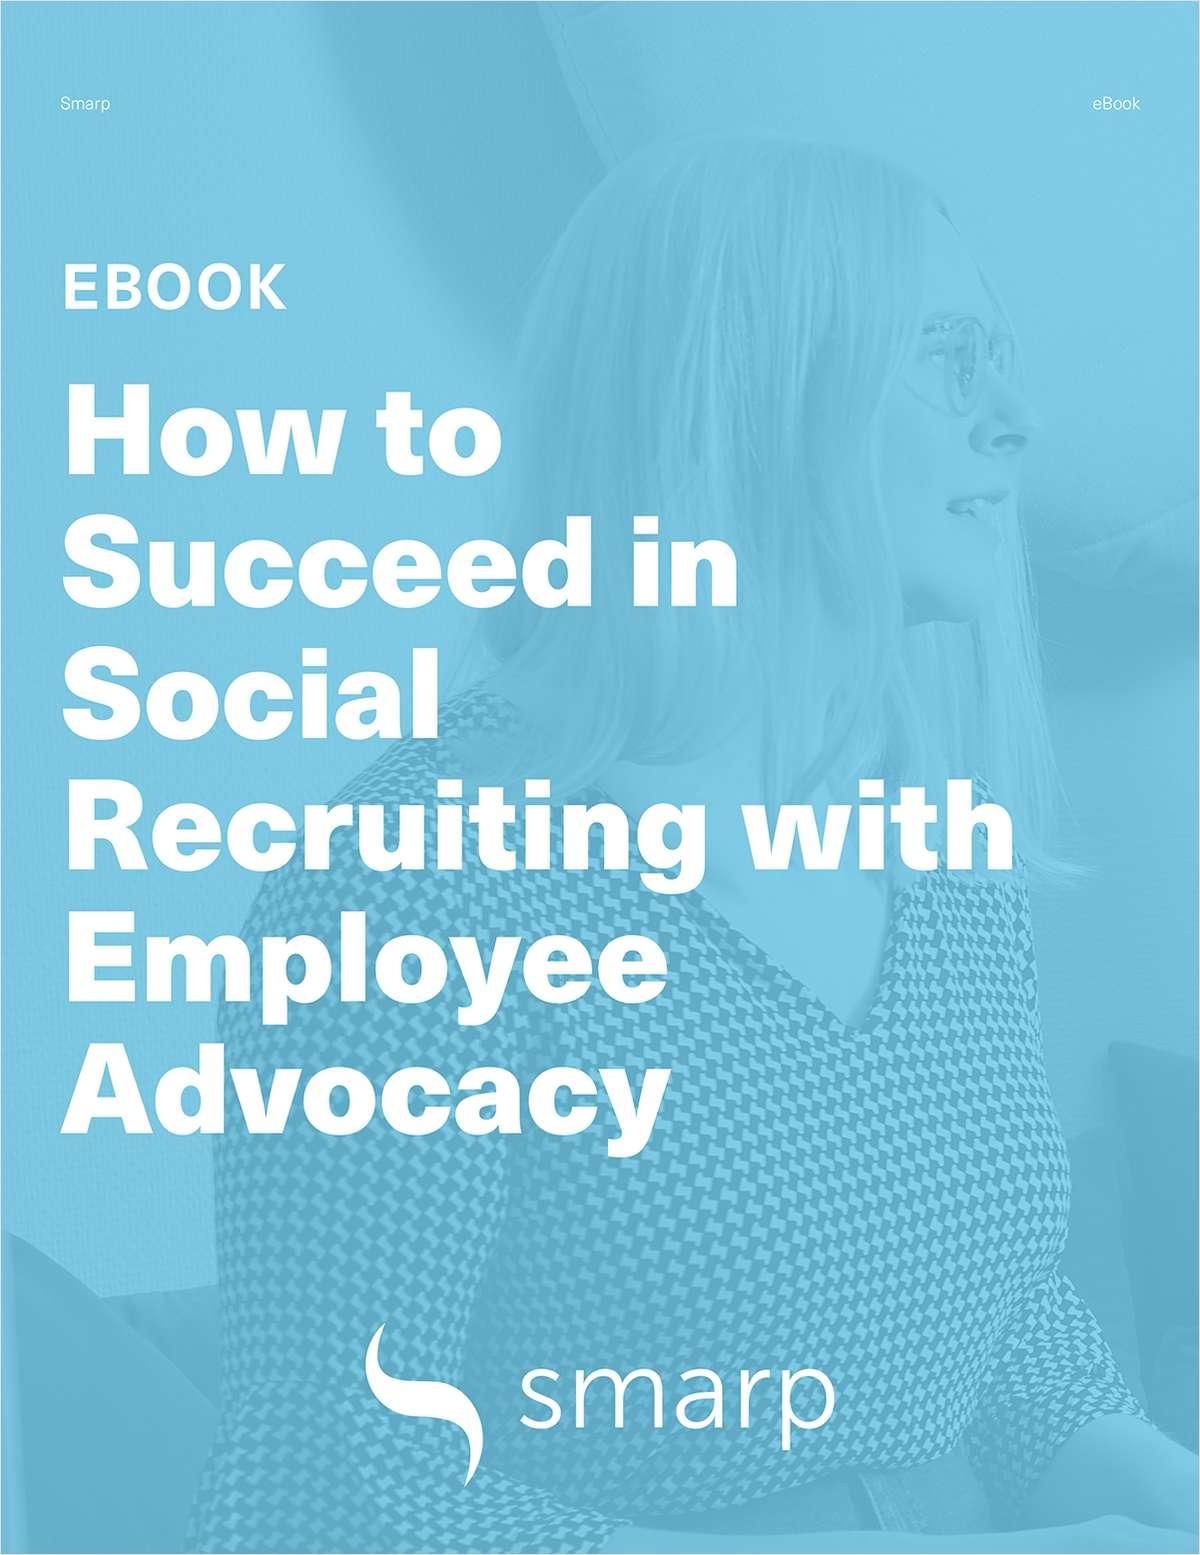 eBook: How to Succeed in Social Recruiting with Employee Advocacy